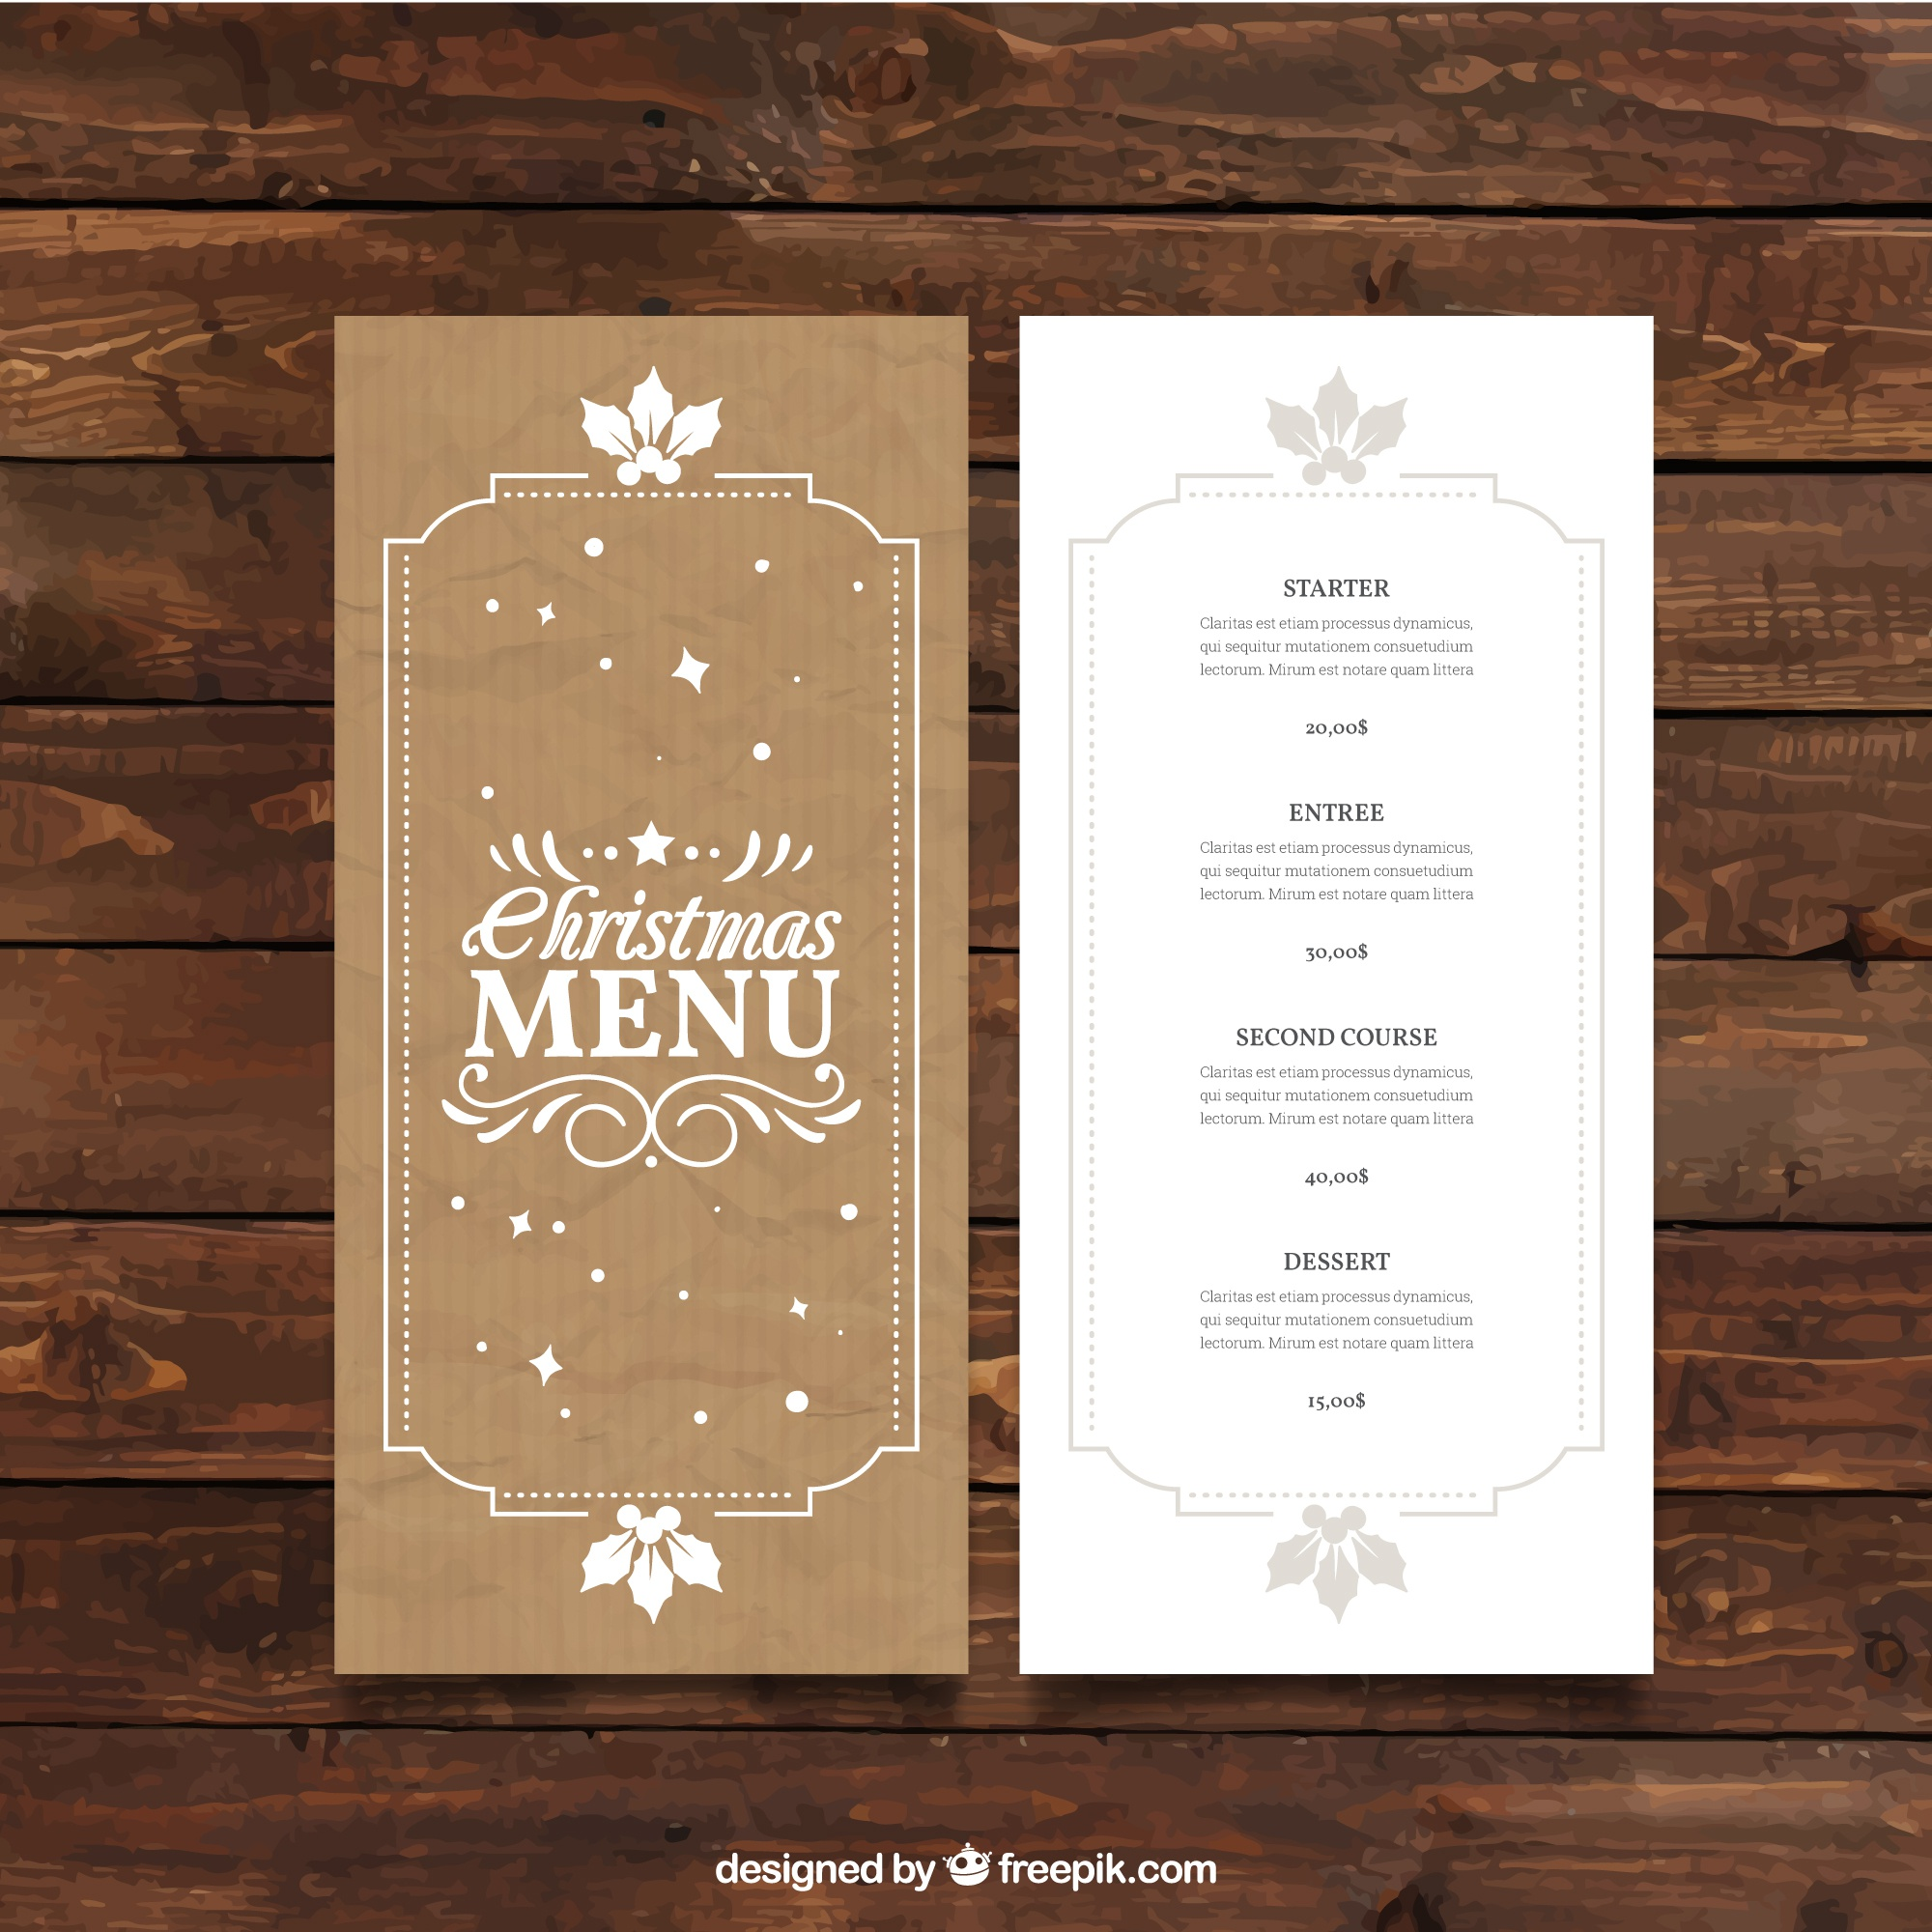 Retro christmas menu template in cardboard style